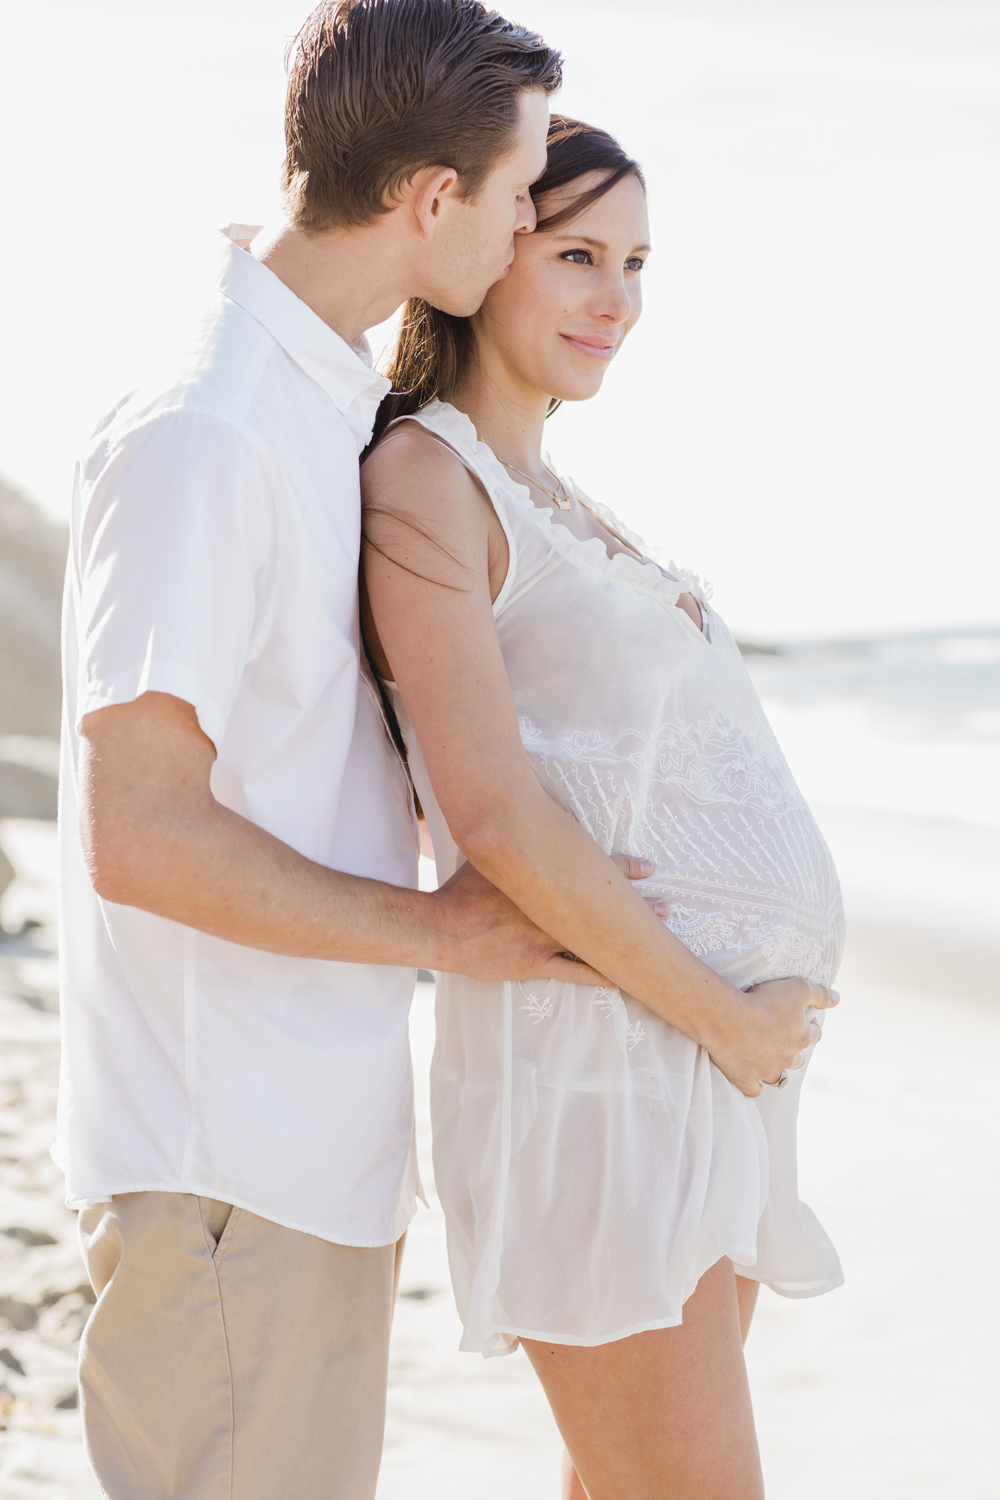 LagunaBeach_Family_MaternityShoot_SidneyKraemer_Low-68.jpg